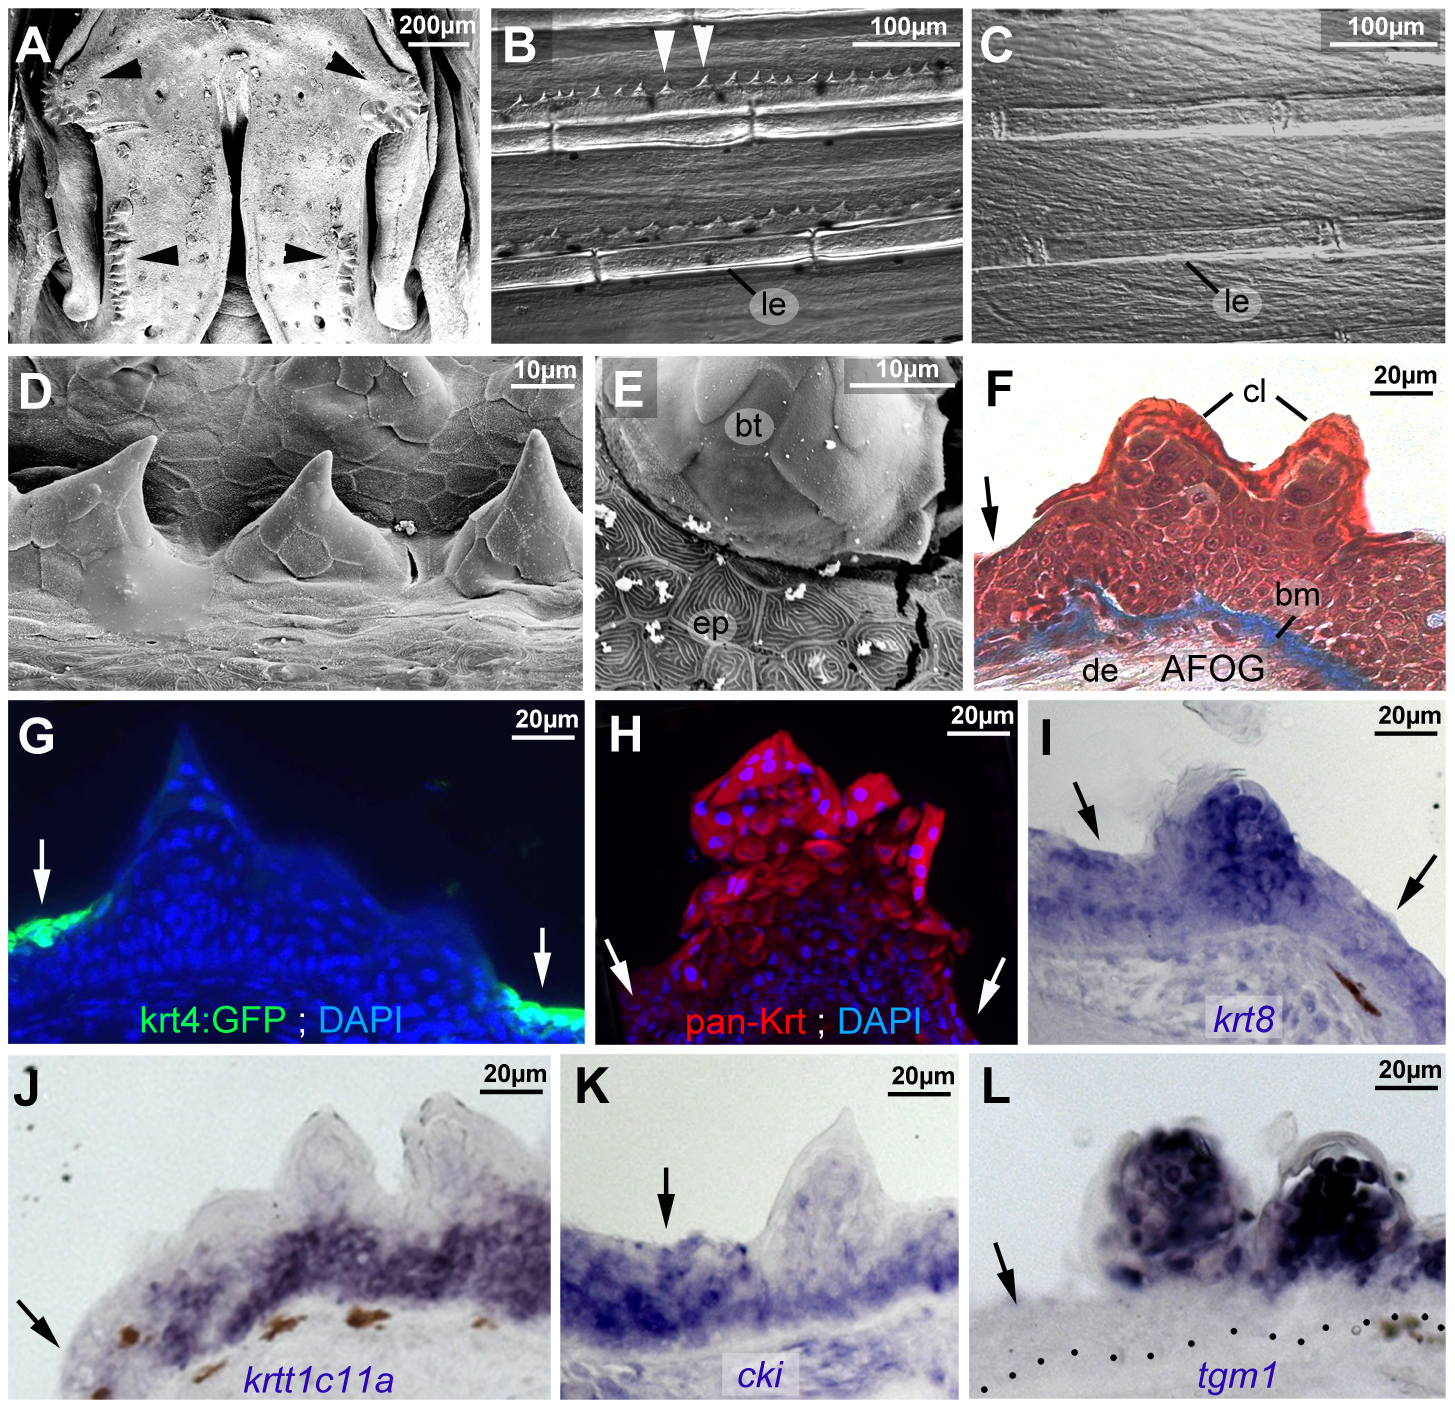 Breeding tubercle keratinocytes undergo more advanced keratinization.